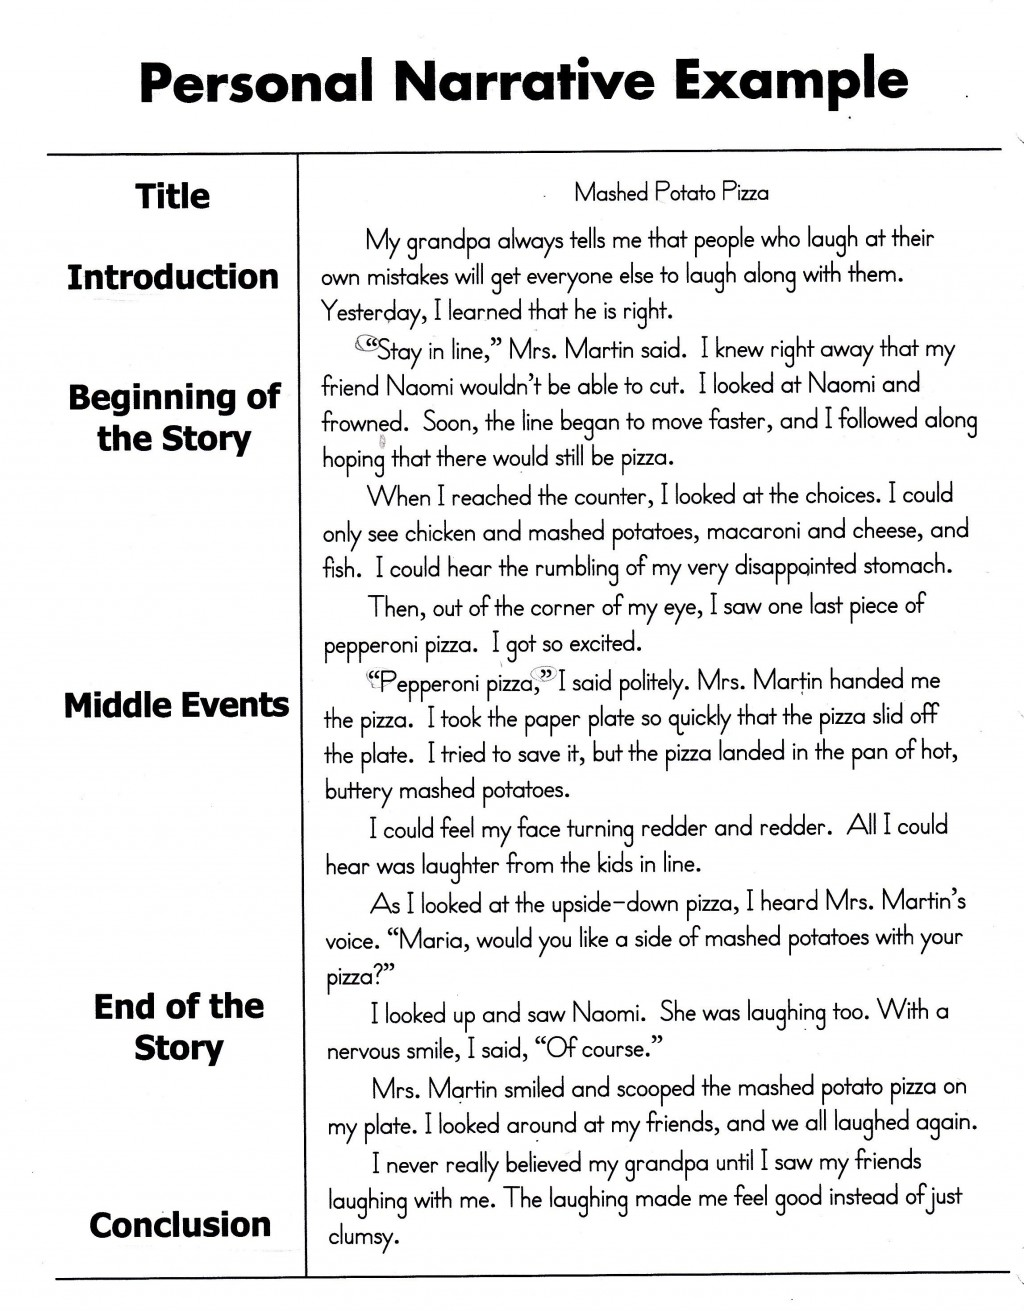 003 Personal Narrative Essay Outline Formidable Sample Pdf Examples Large